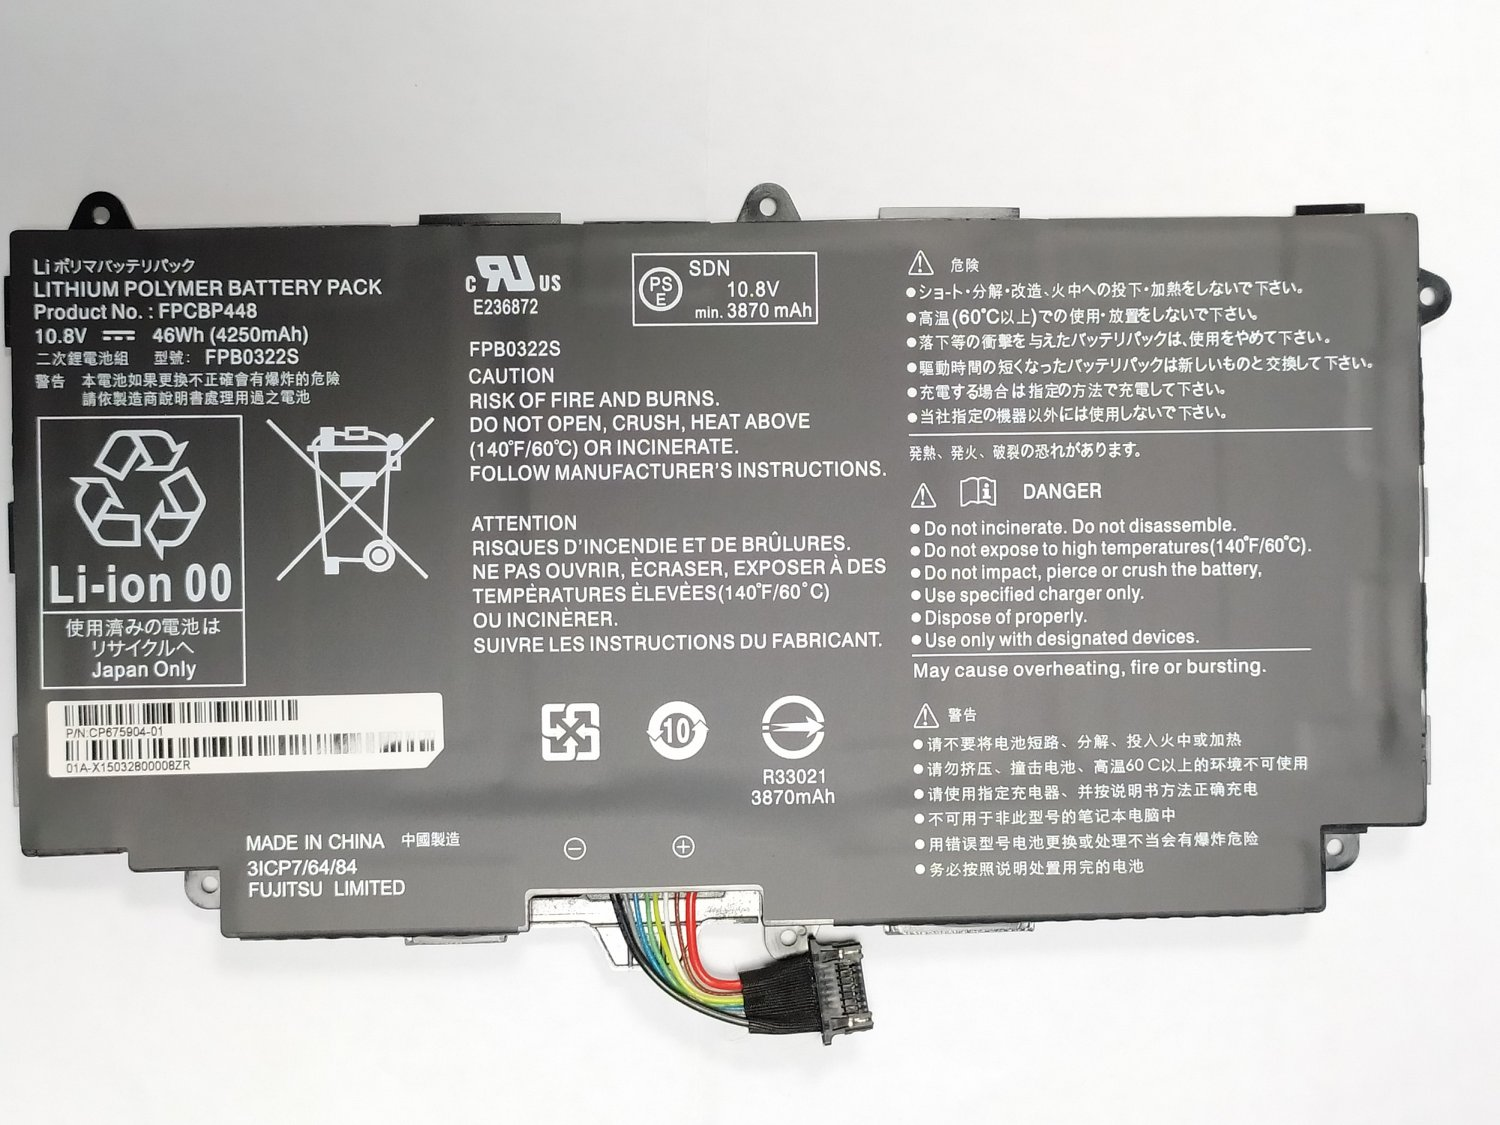 New FPCBP448 10.8V 46Wh Battery for Fujitsu Stylistic Q775 Q737 FPB0322S